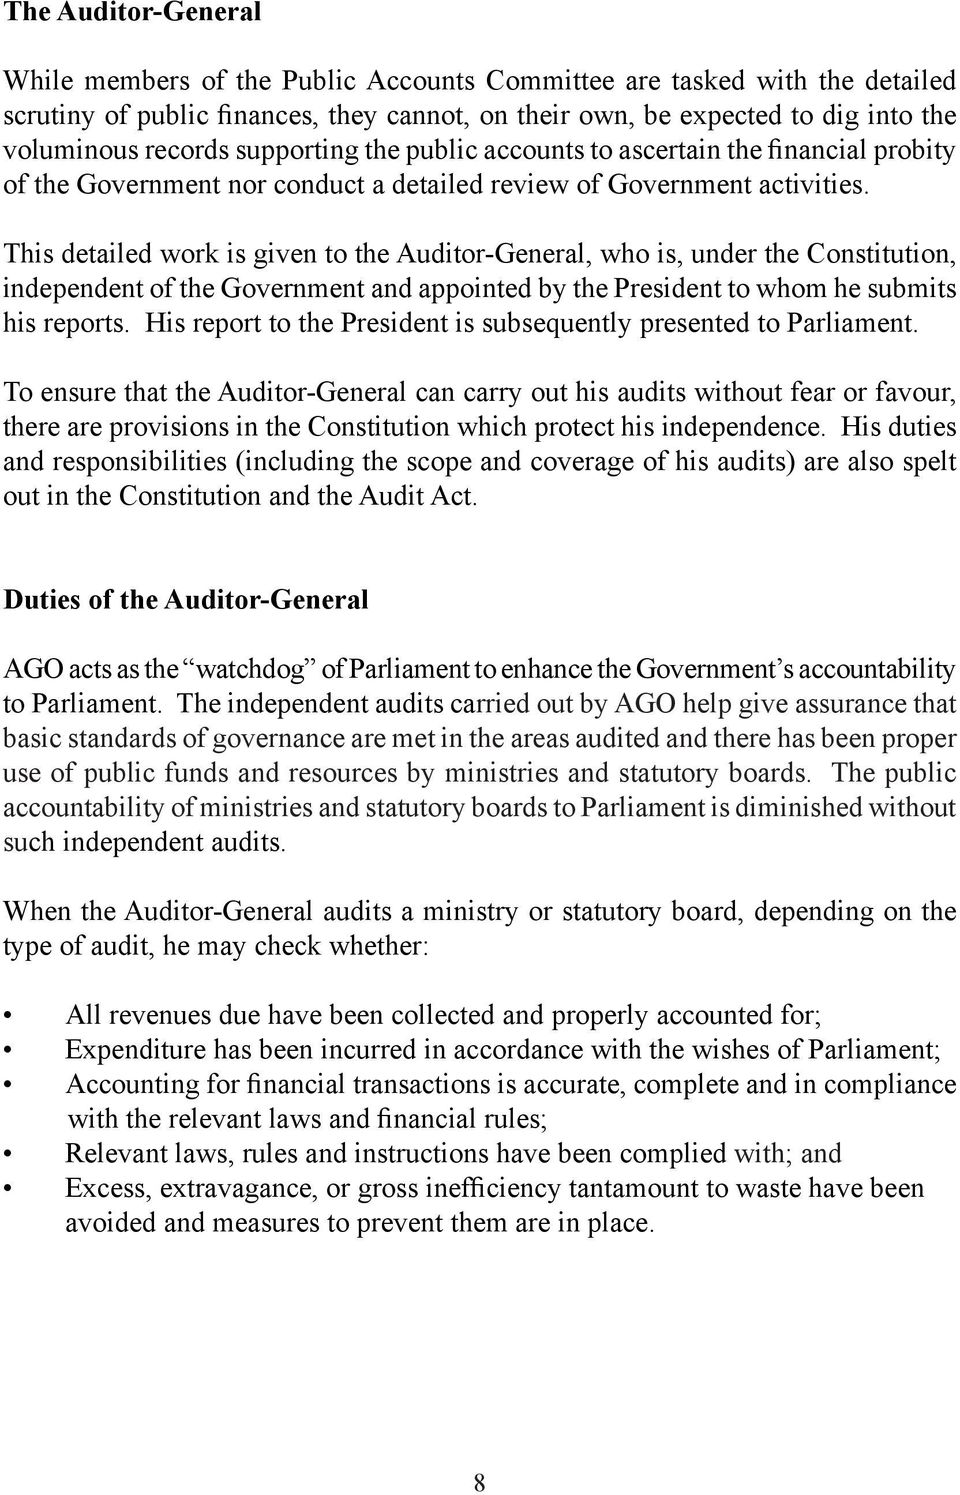 This detailed work is given to the Auditor-General, who is, under the Constitution, independent of the Government and appointed by the President to whom he submits his reports.